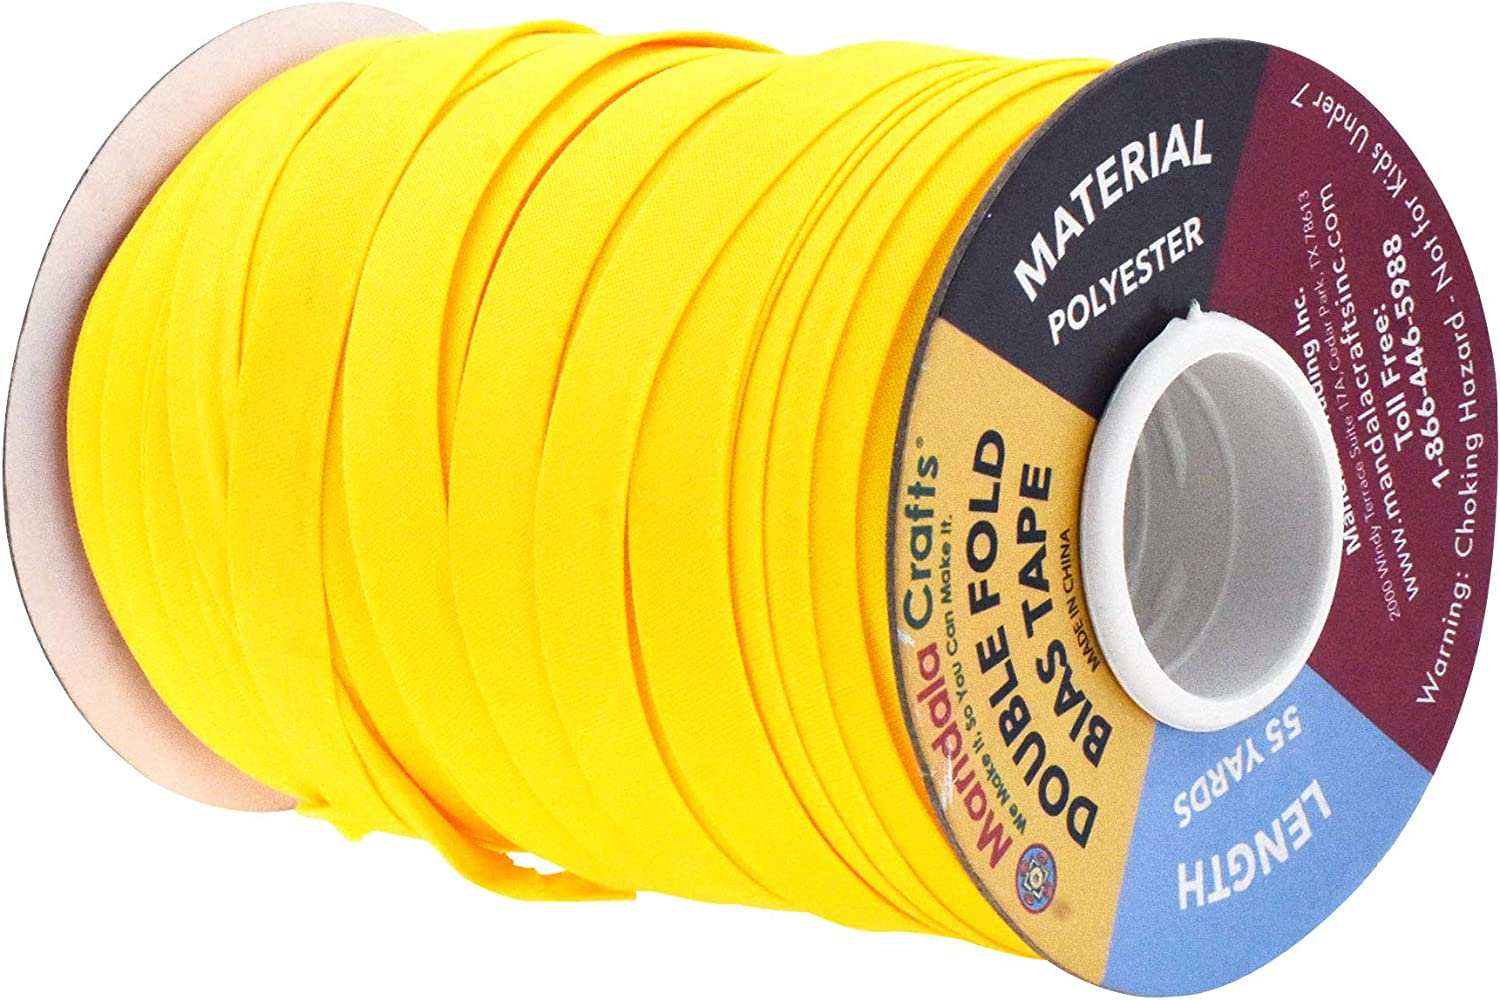 1//2 Inch 55 Yards, Yellow Quilting; 1//2 Inch 55 Yards; by Mandala Crafts Hemming Binding Piping Double Fold Bias Tape for Sewing Seaming